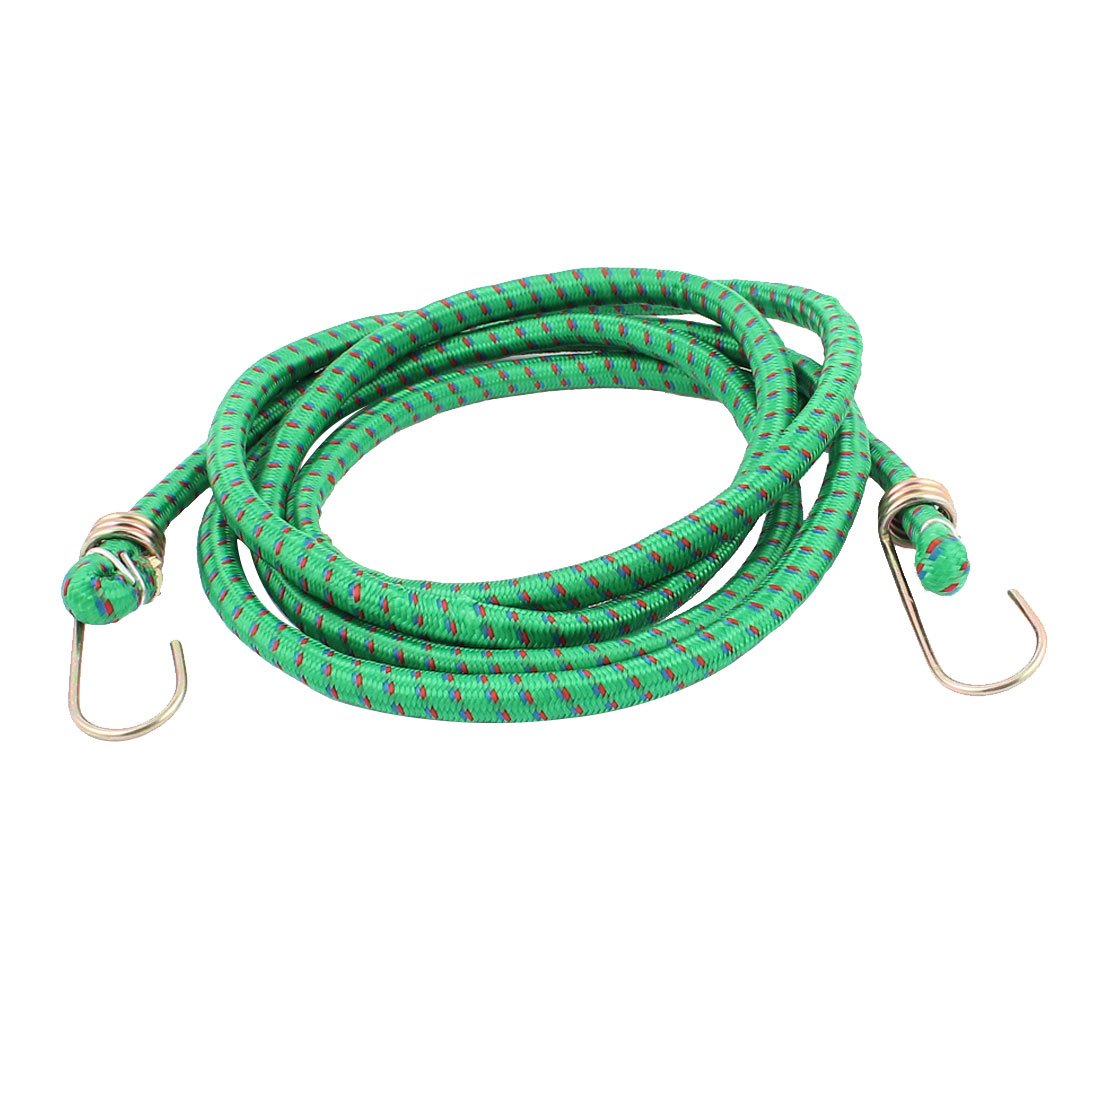 Nylon Elastic Striped Strap Metal Dual Hooks Car Bike Luggage Cord Green